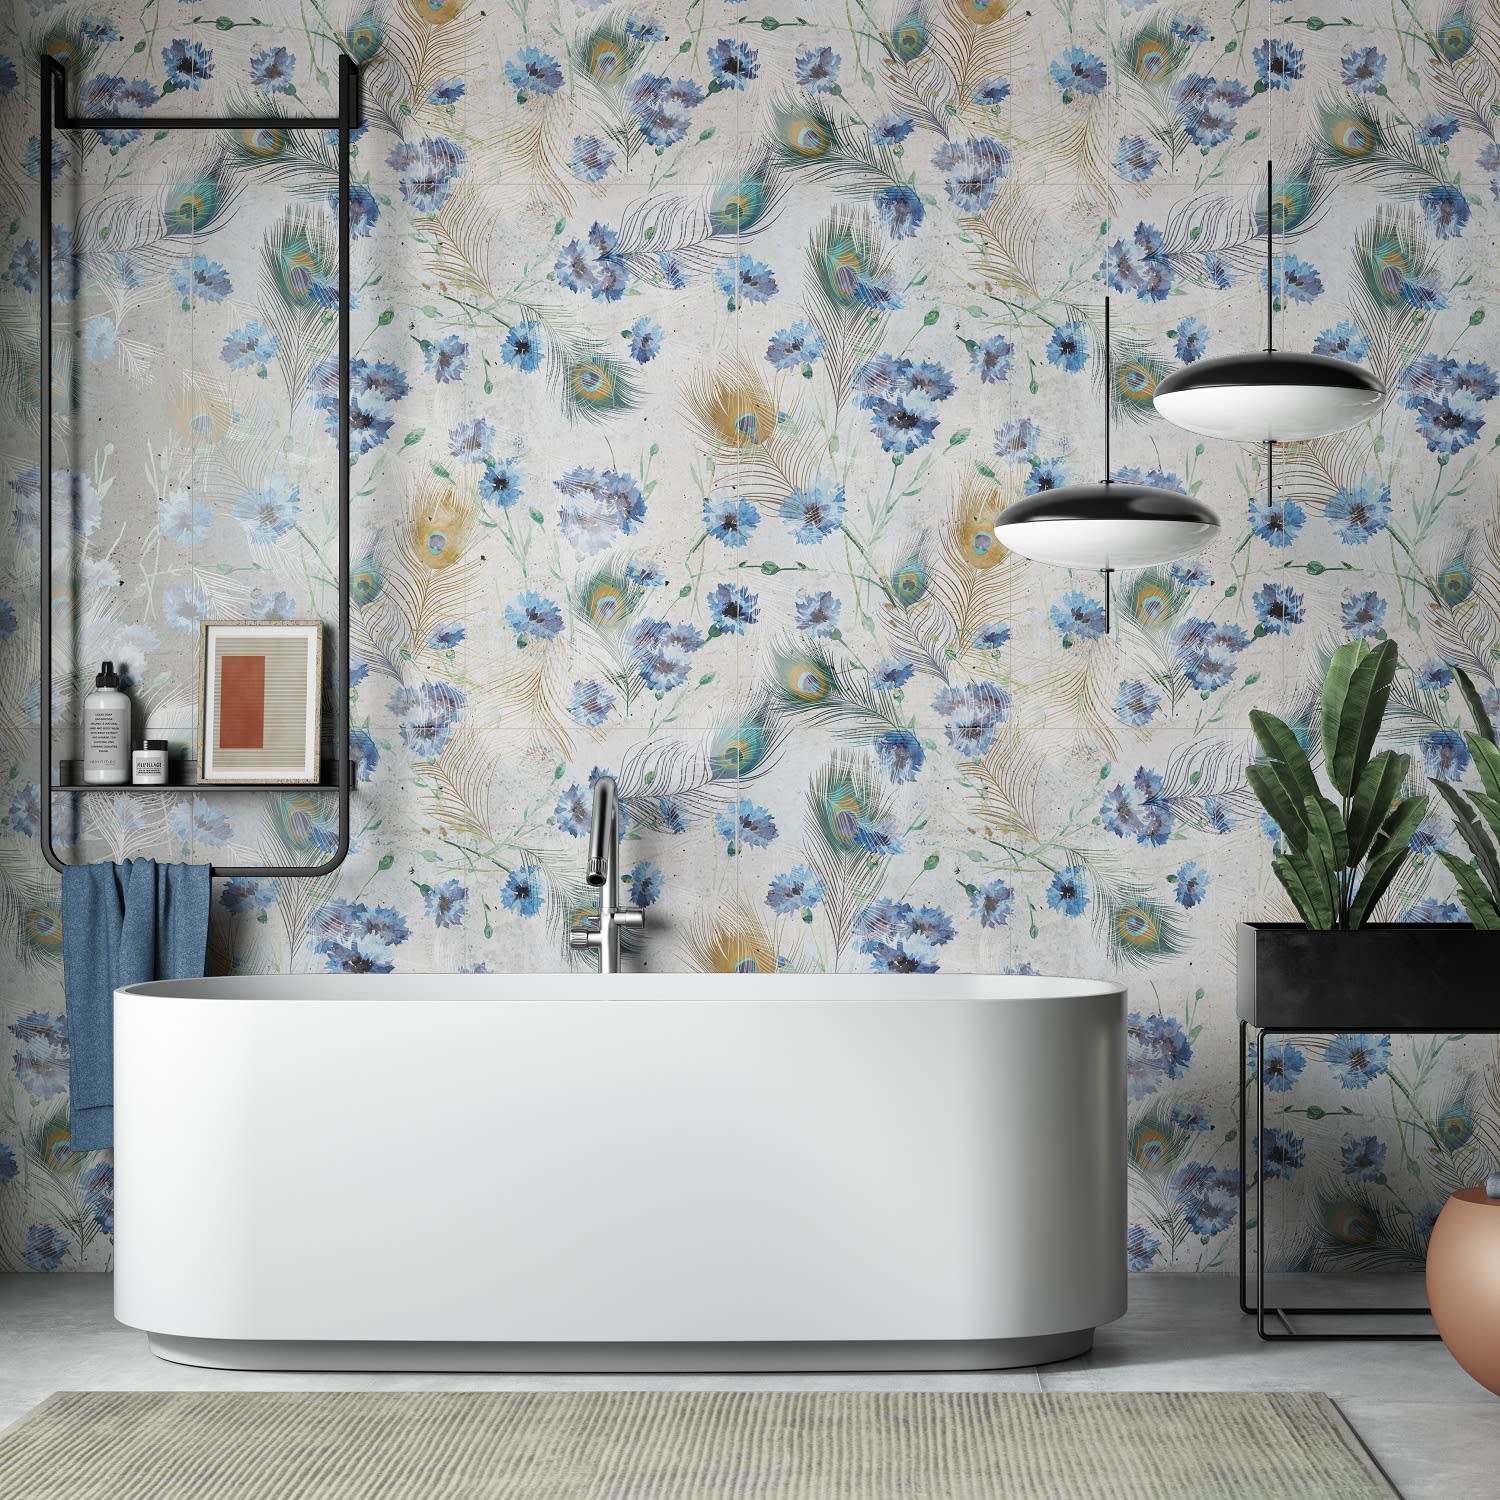 Browse our curated collection of patterned, victorian, and statement ceramic and porcelain tiles for kitchens, bathrooms, and splashtops